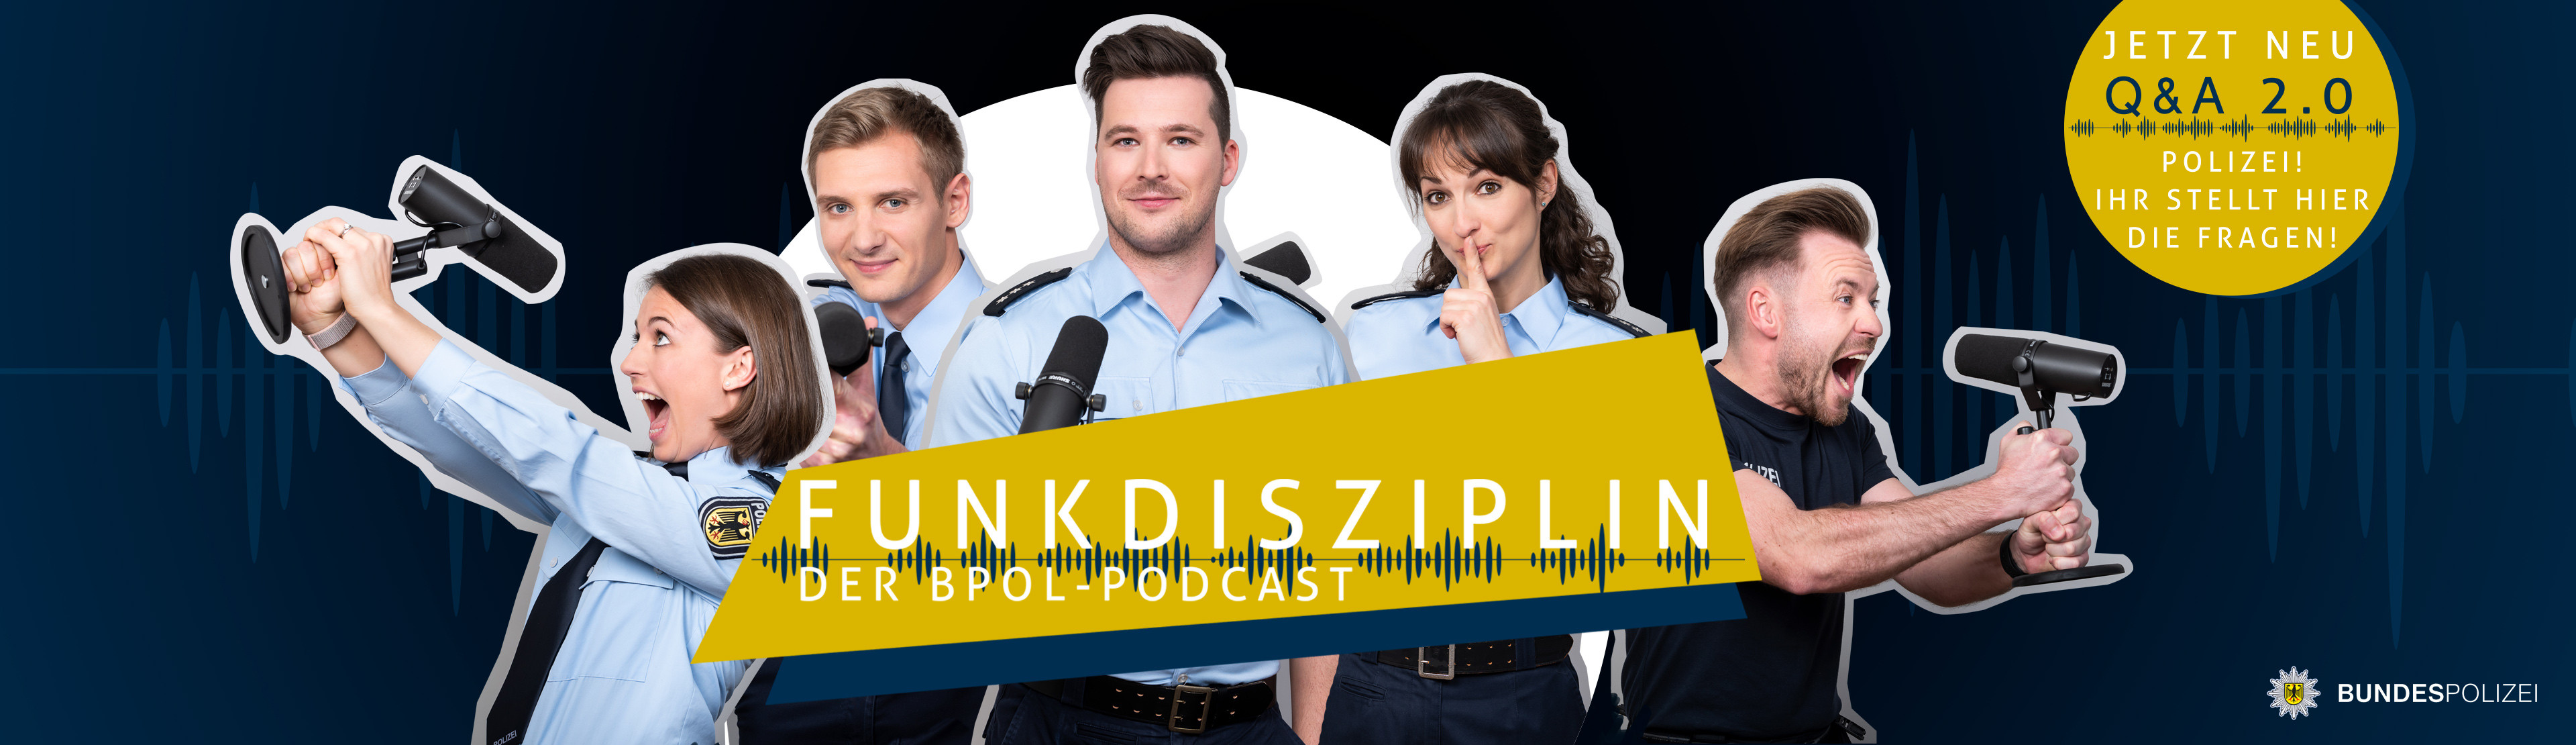 Header zum Podcast der Bundespolizei